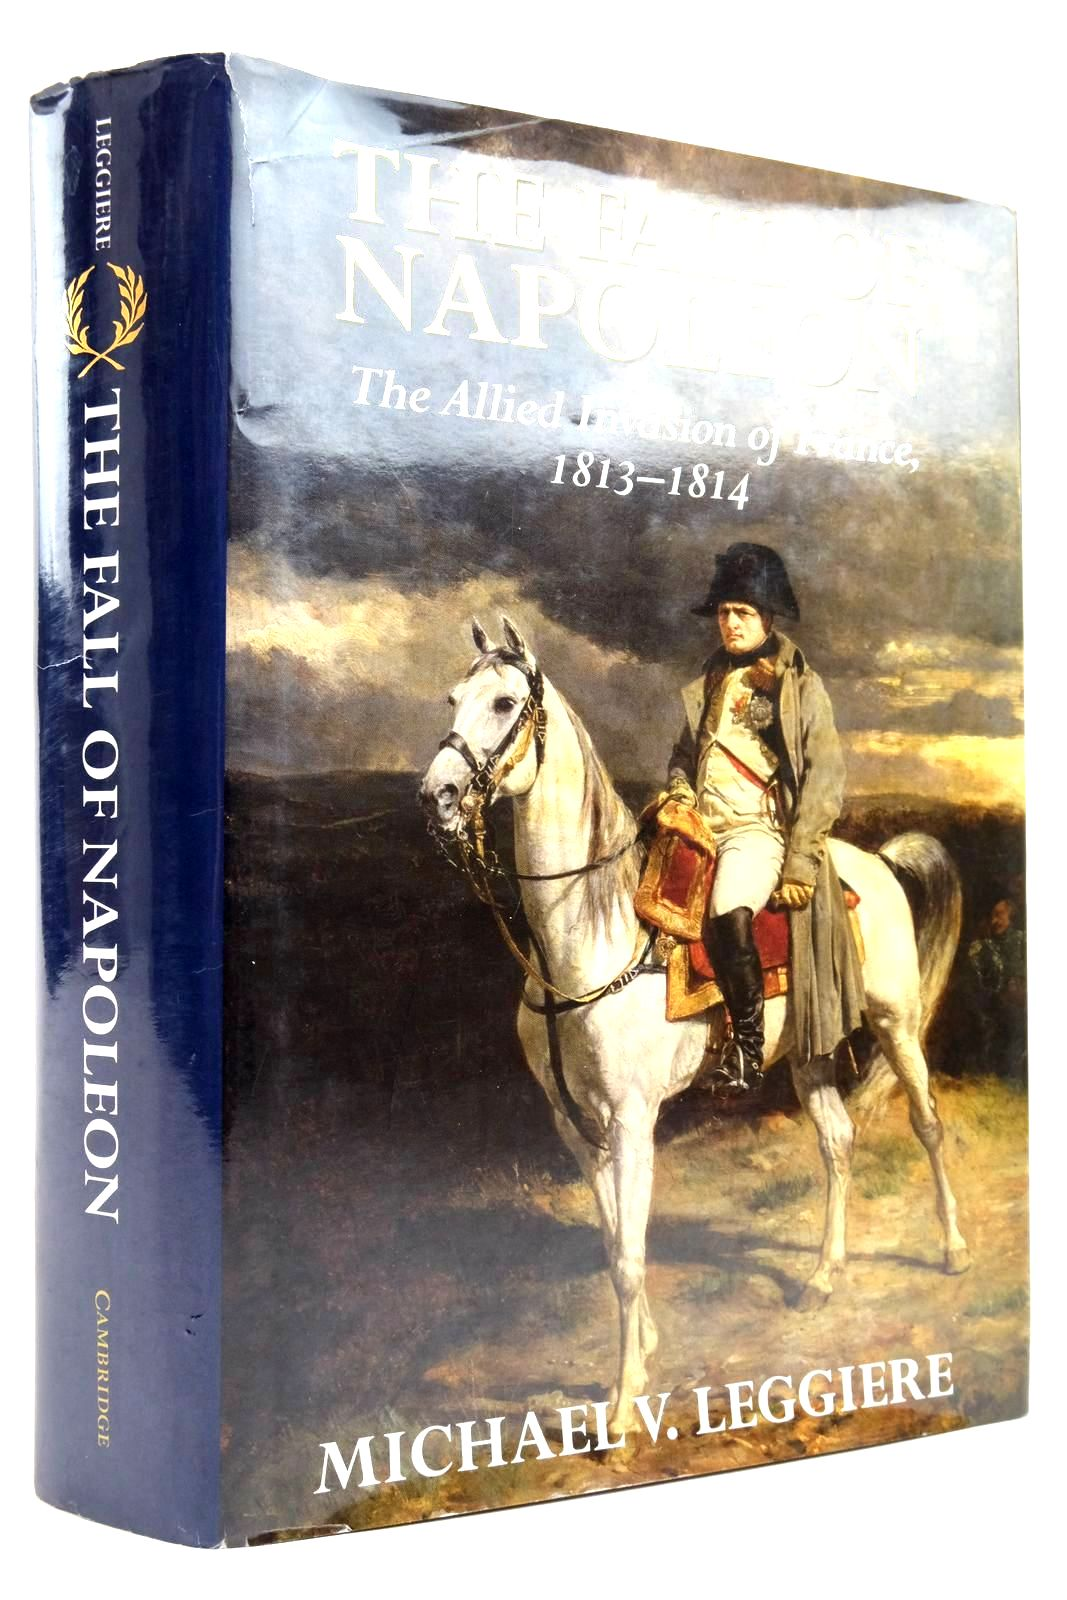 Photo of THE FALL OF NAPOLEON VOLUME I: THE ALLIED INVASION OF FRANCE, 1813-1814- Stock Number: 2135514